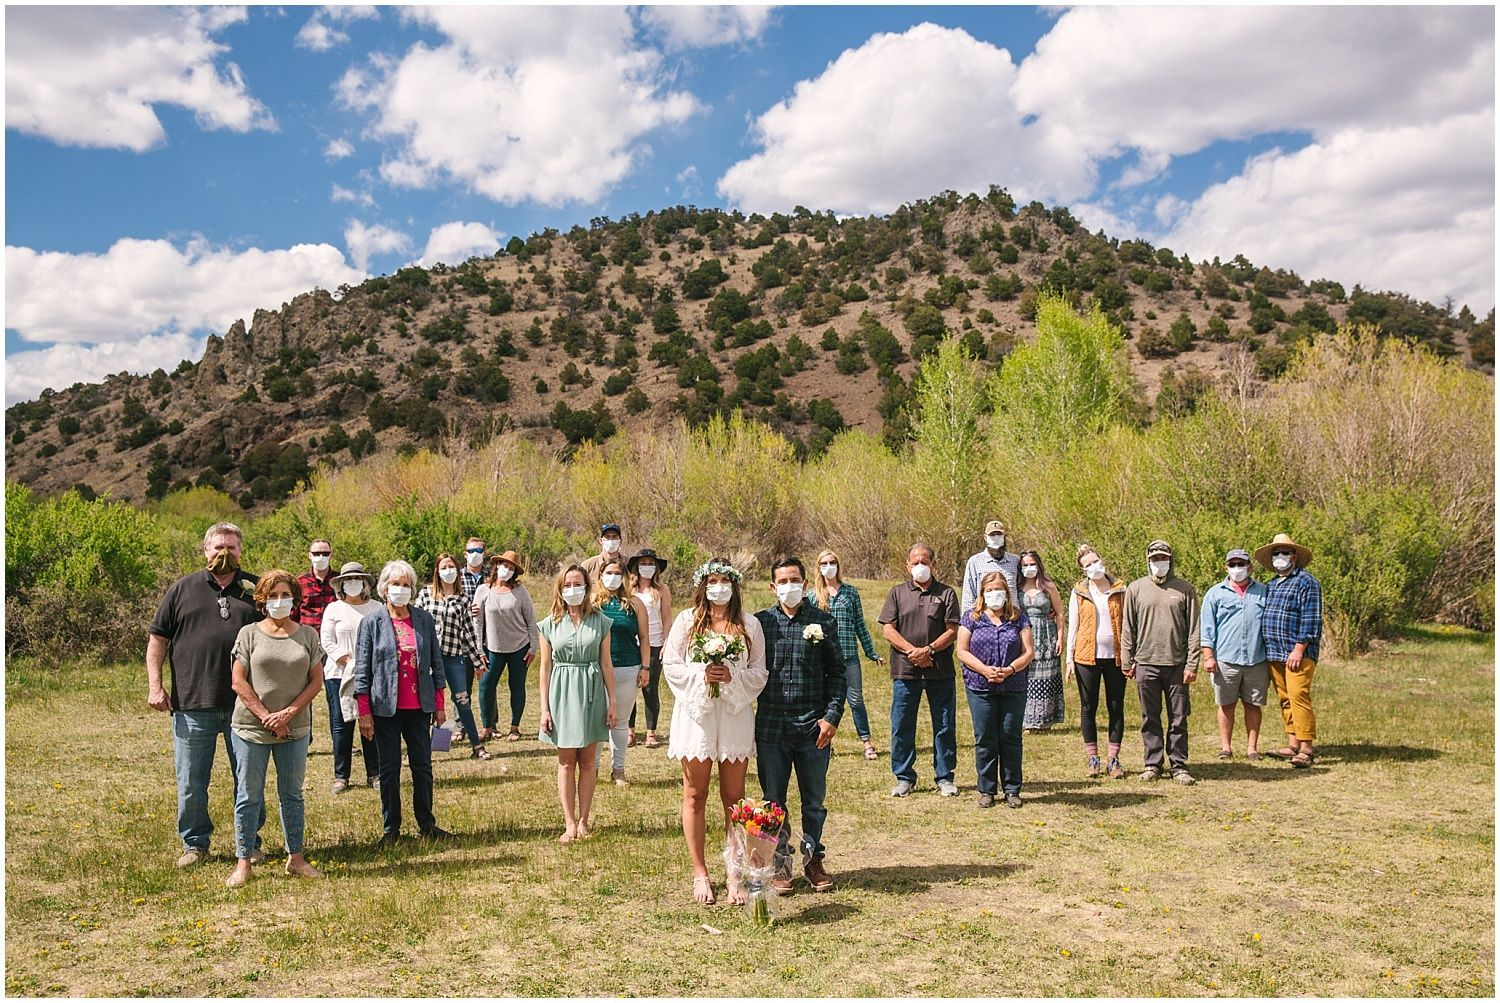 Colorado Backcountry Campsite Elopement in Rio Grande